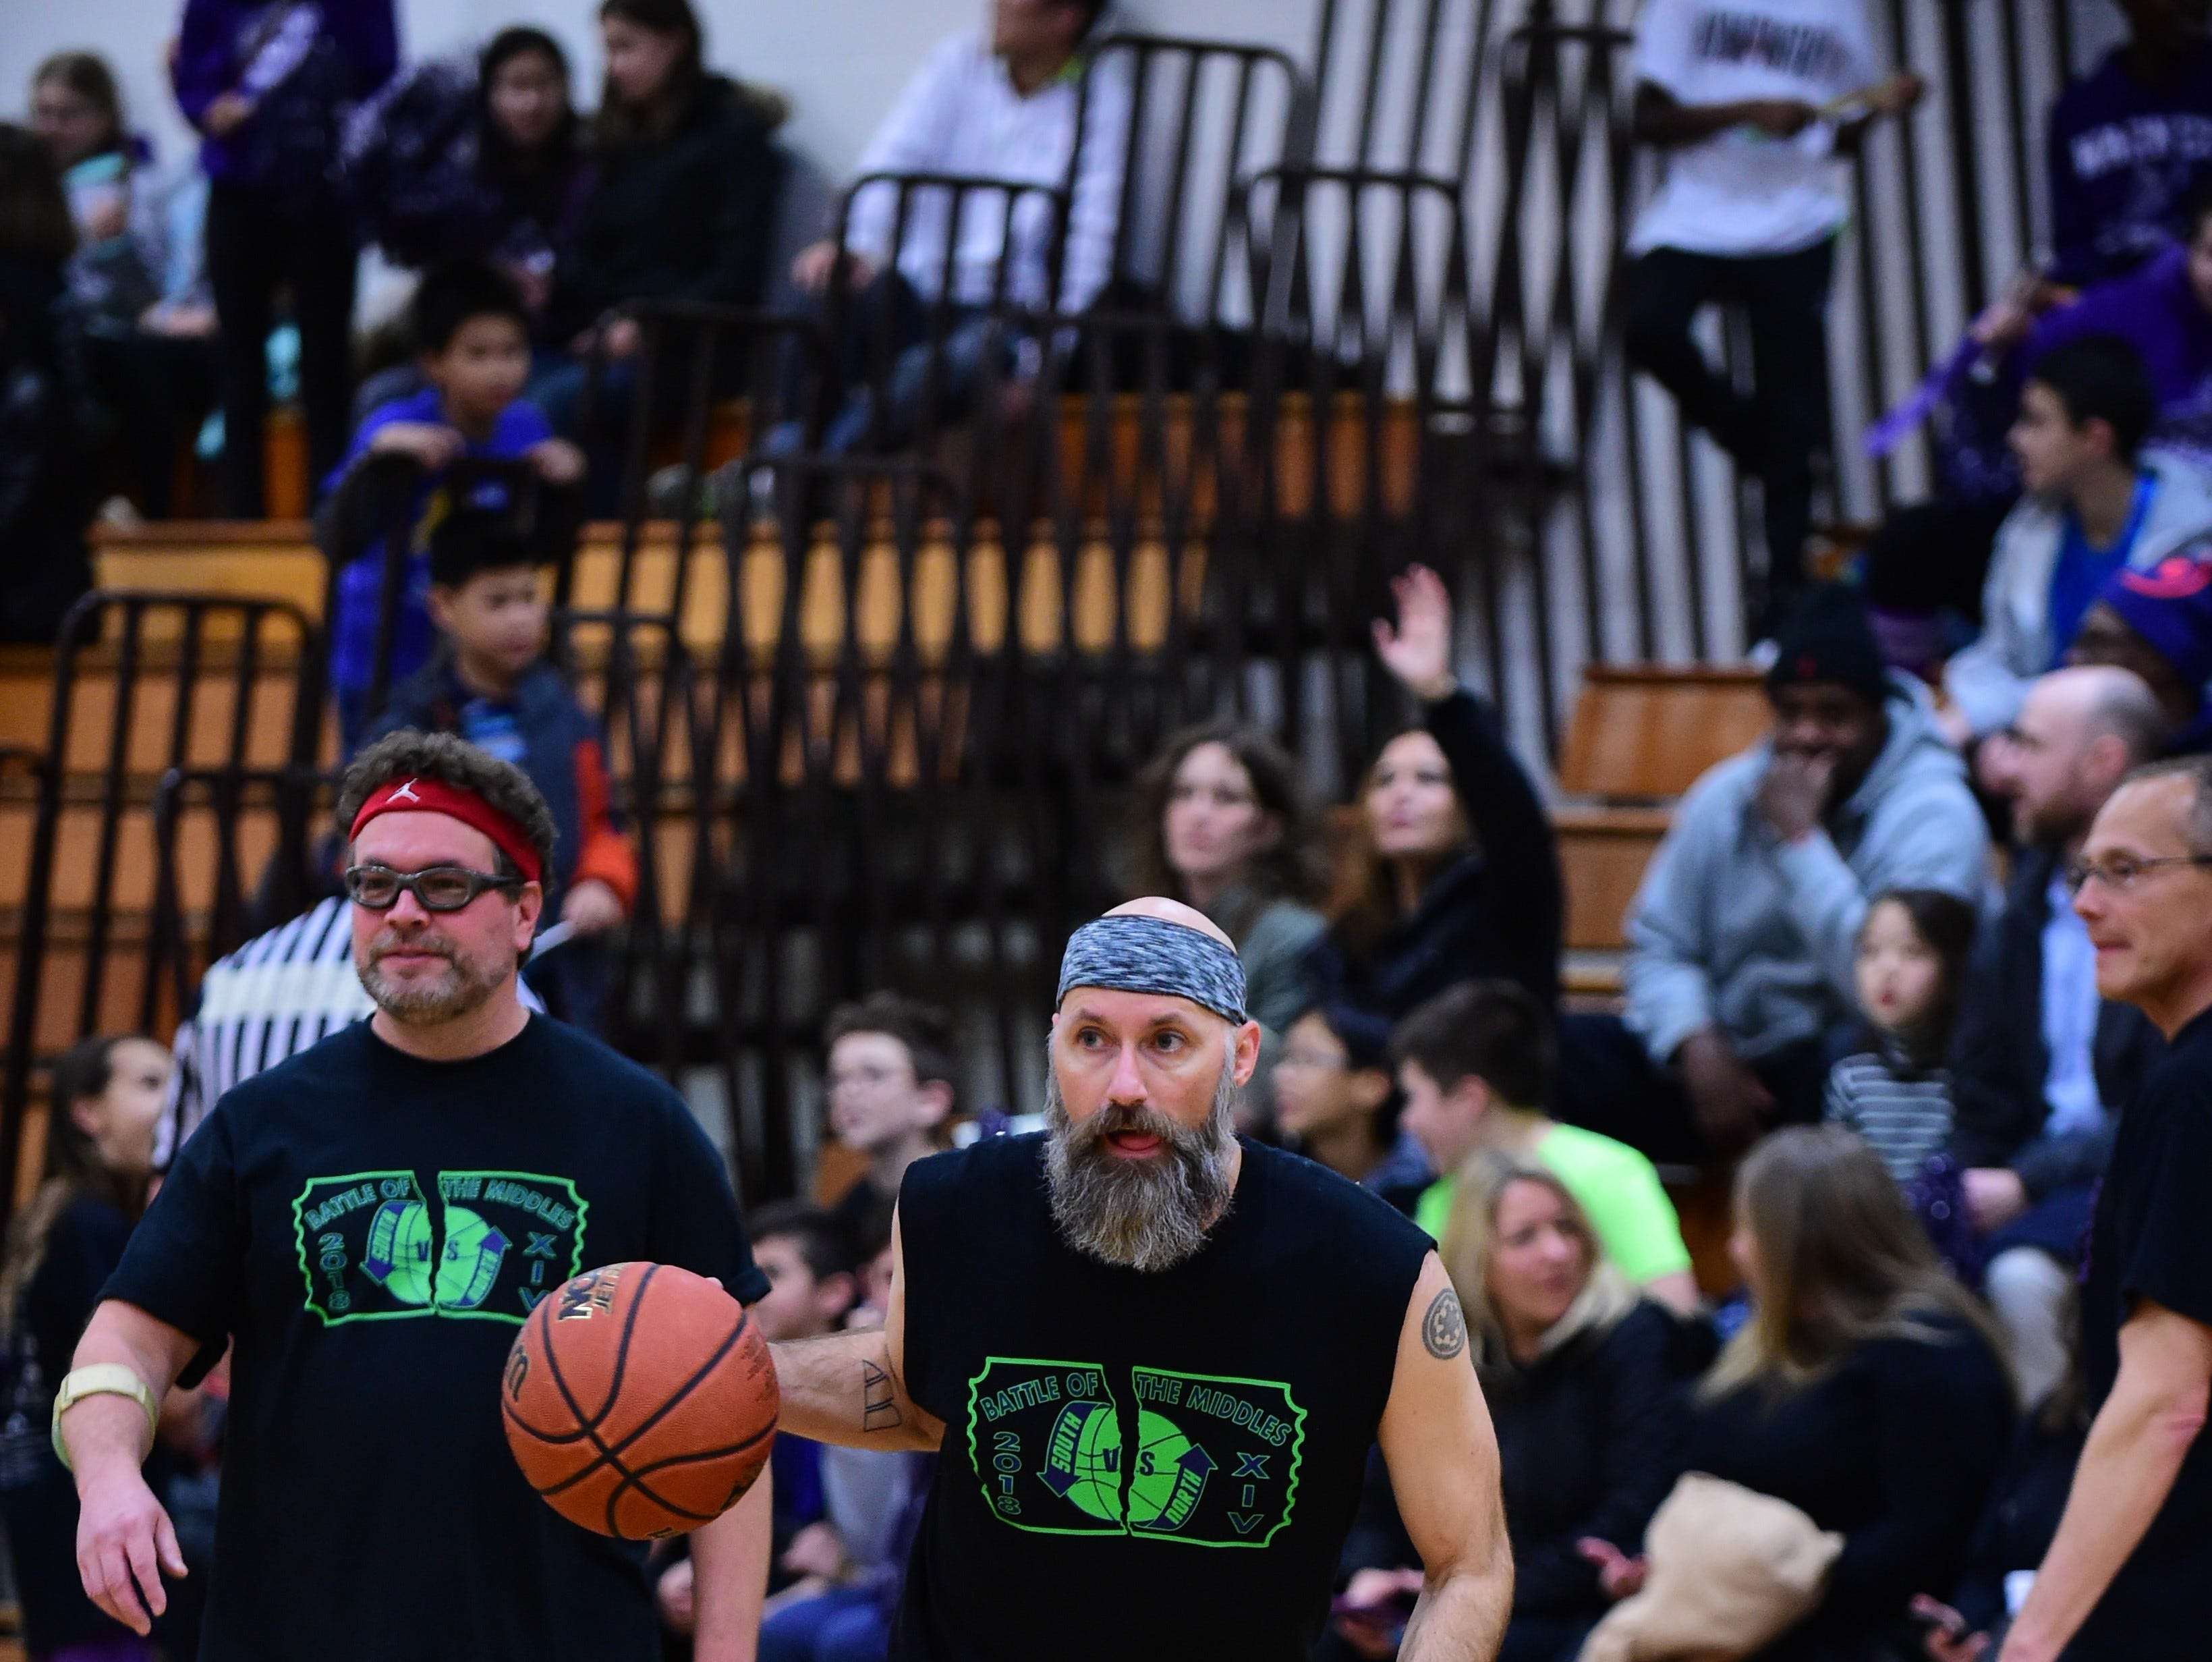 Teachers warm up prior to the Battle of the Middles staff charity basketball game held Friday evening at Harrison.